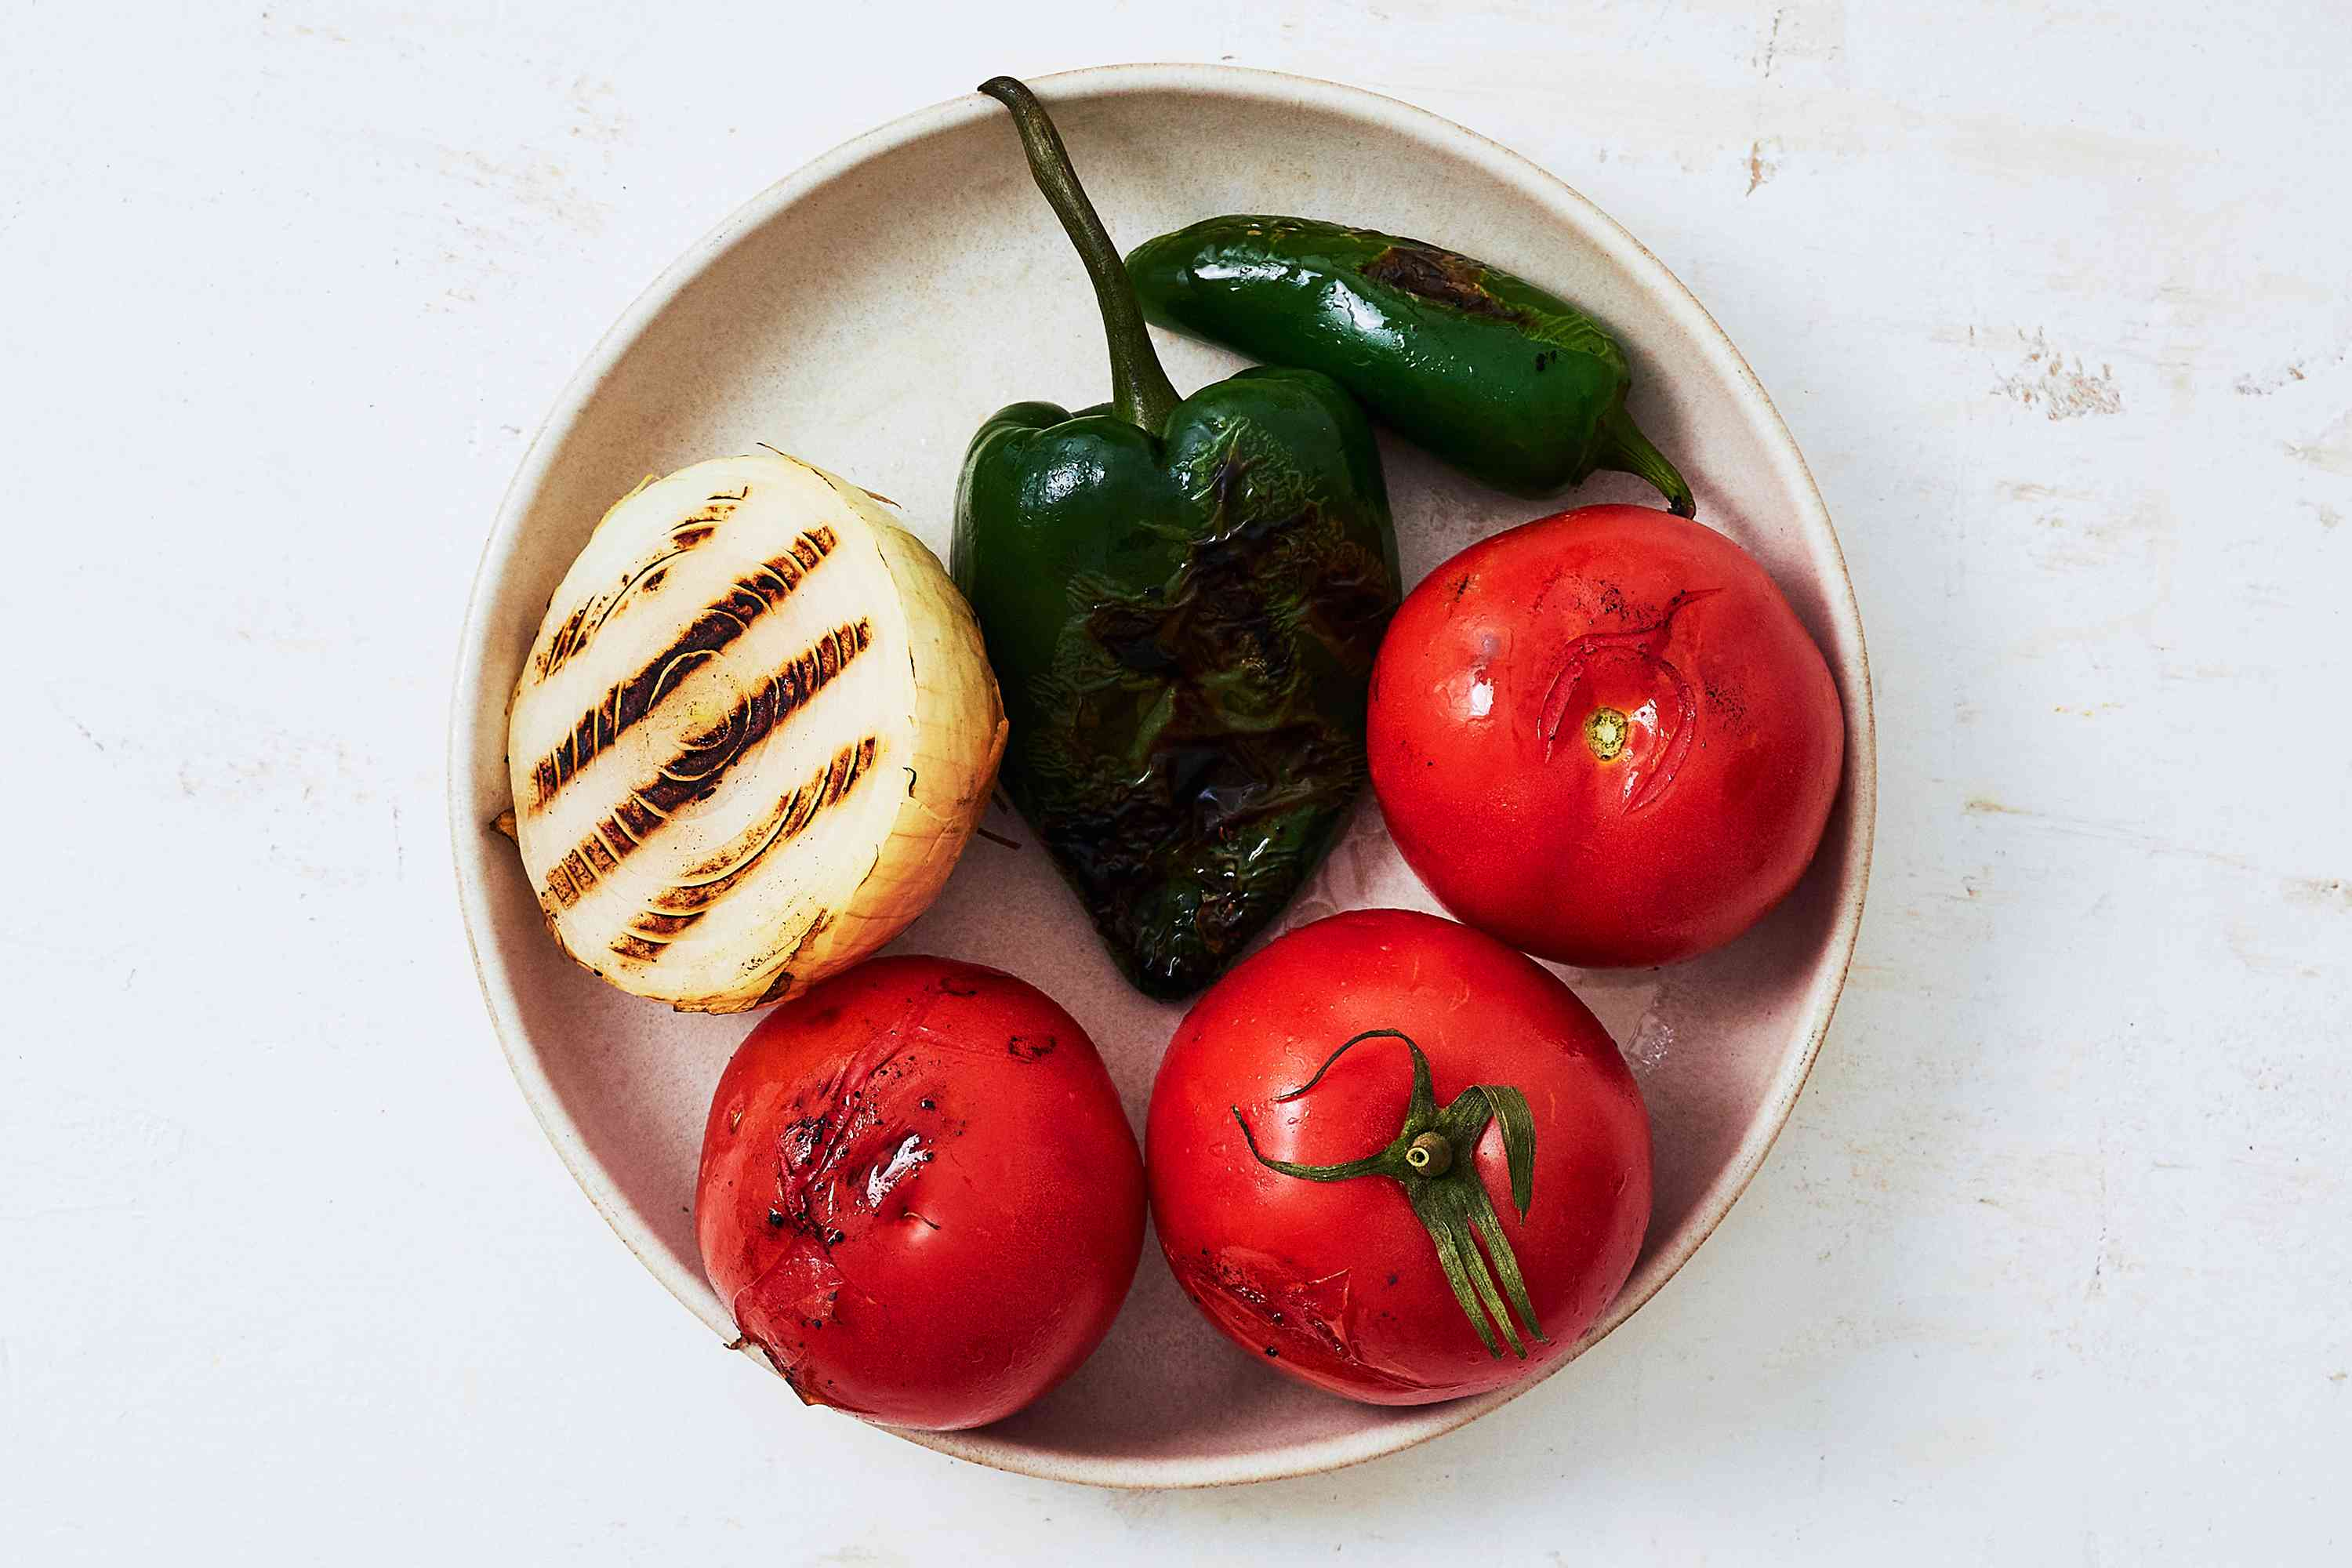 grilled vegetables on the plate